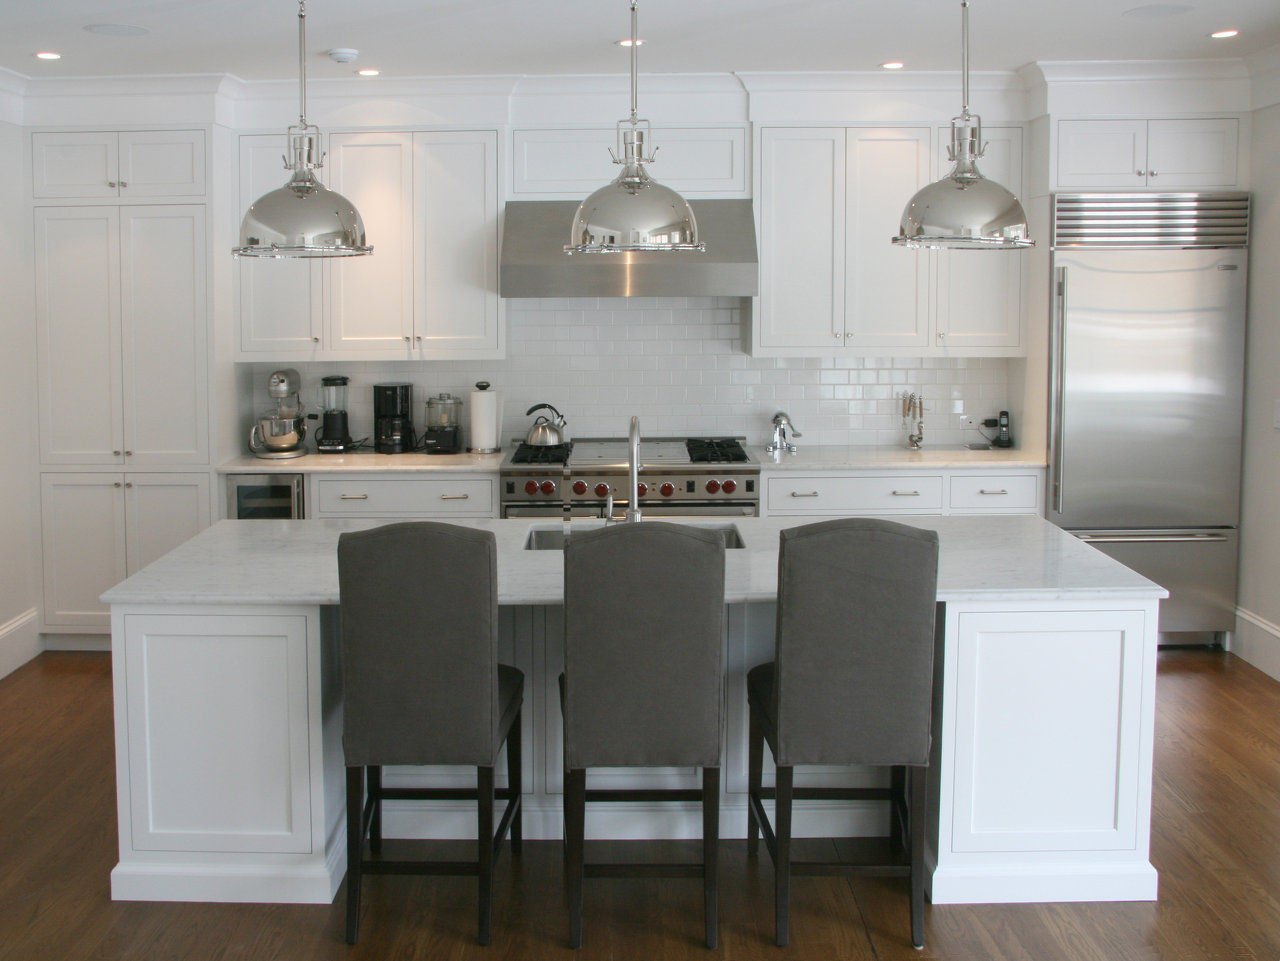 Interior Design Hamptons NY - Hamptons kitchen design